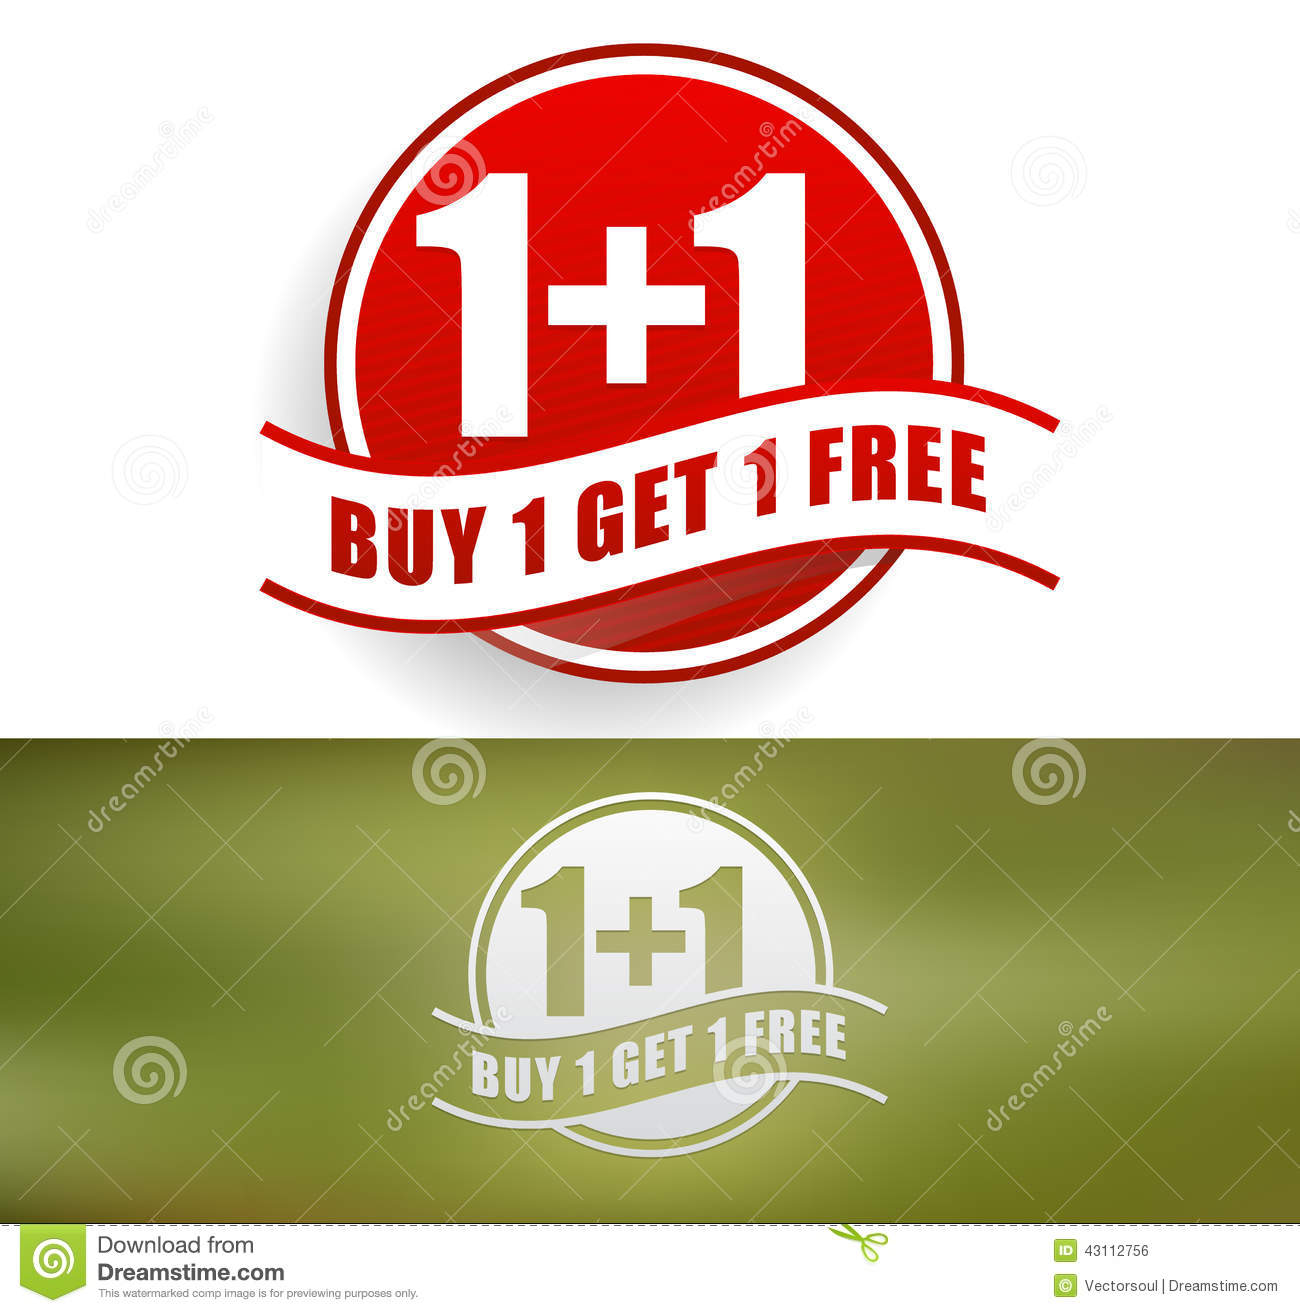 Buy One Get One: Buy One, Get One Free Stock Vector. Illustration Of